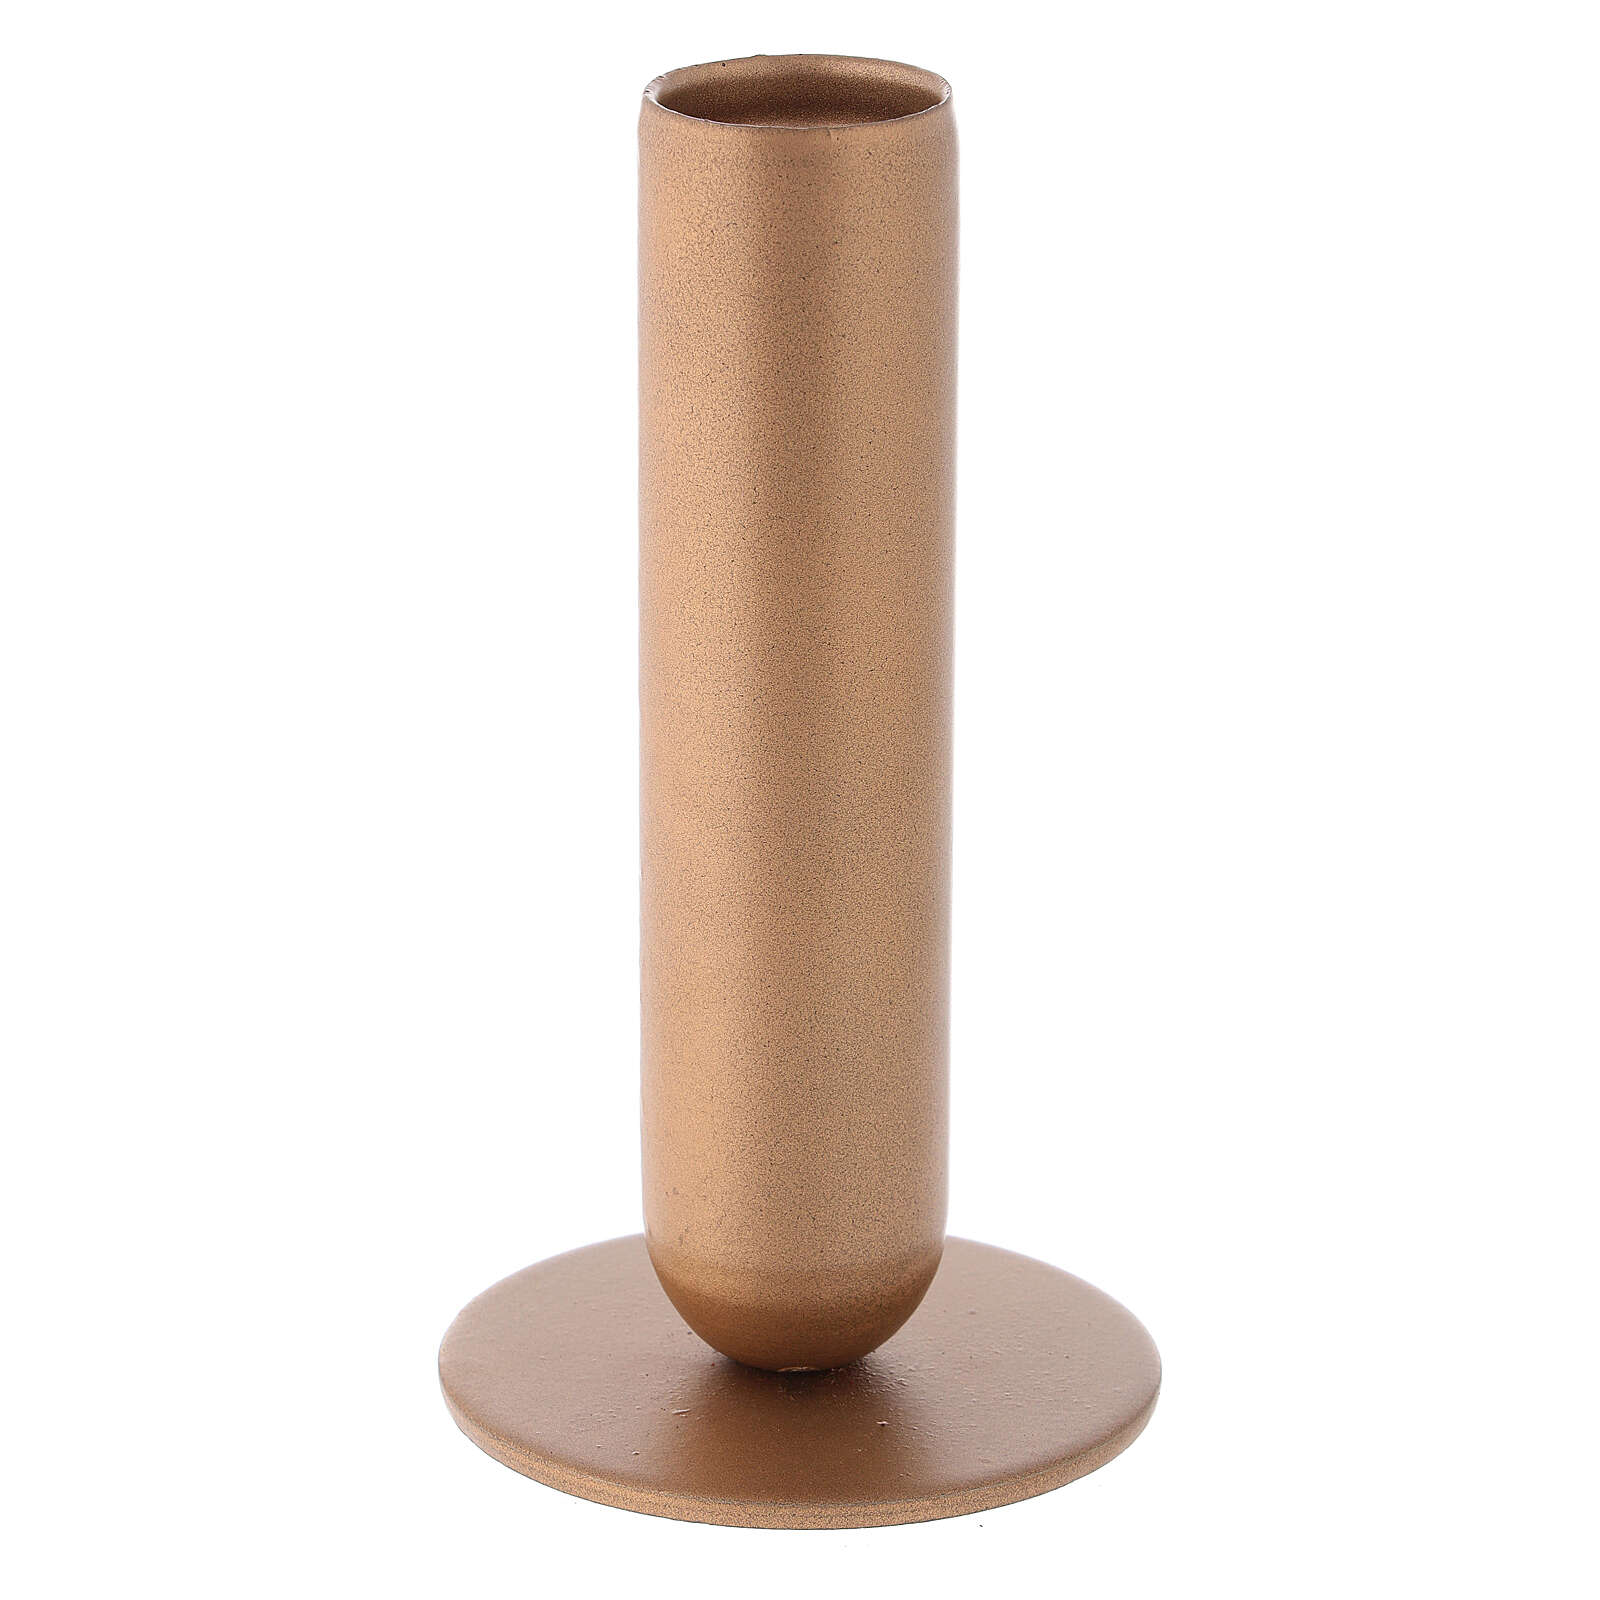 Gold-colored iron candlestick high socket h 4 3/4 in 3